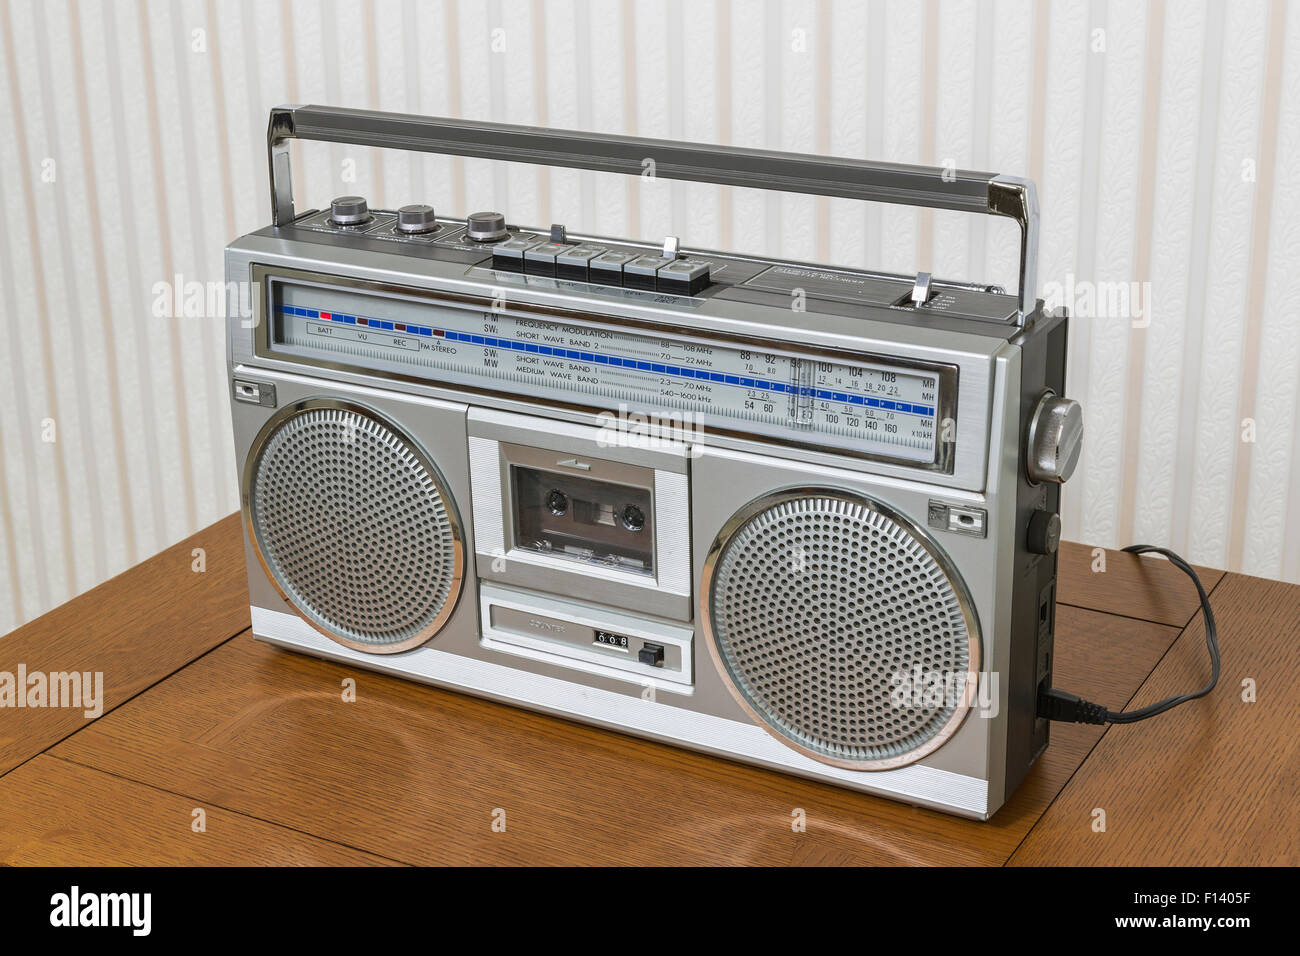 Old boom box radio cassette recorder on wood table. - Stock Image